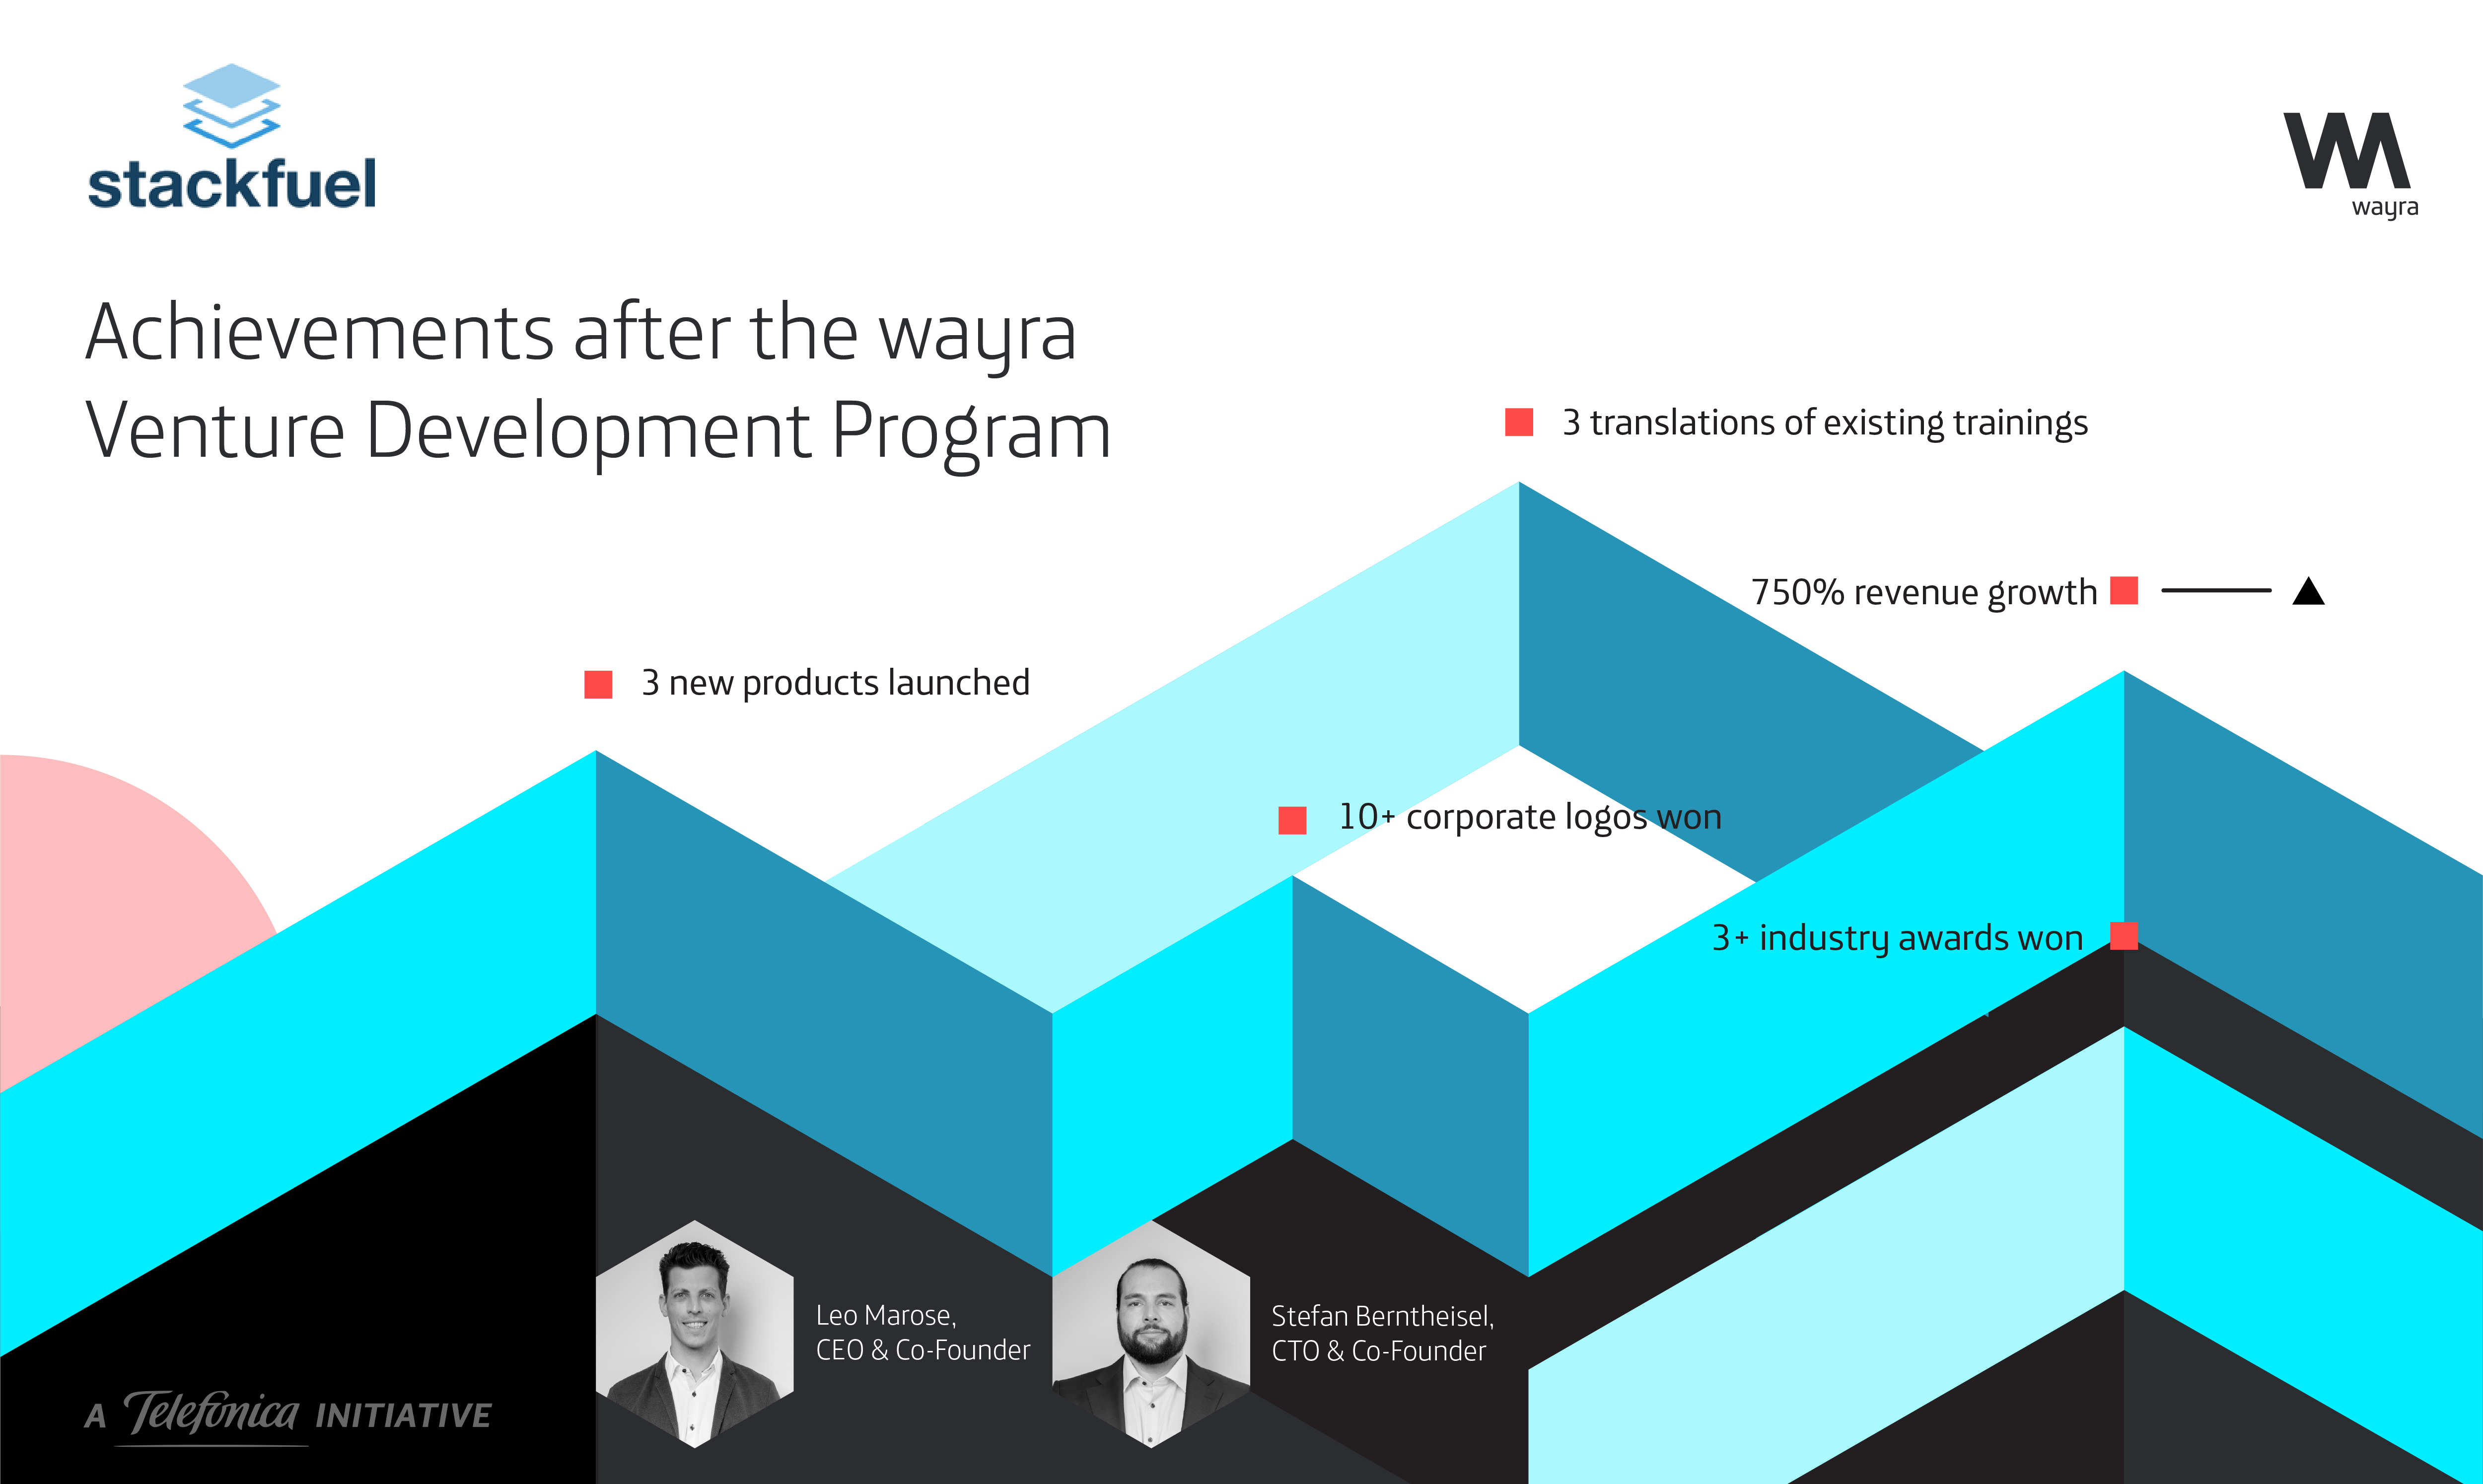 wayra Germany portfolio startup achievements after accelerator program, Stackfuel